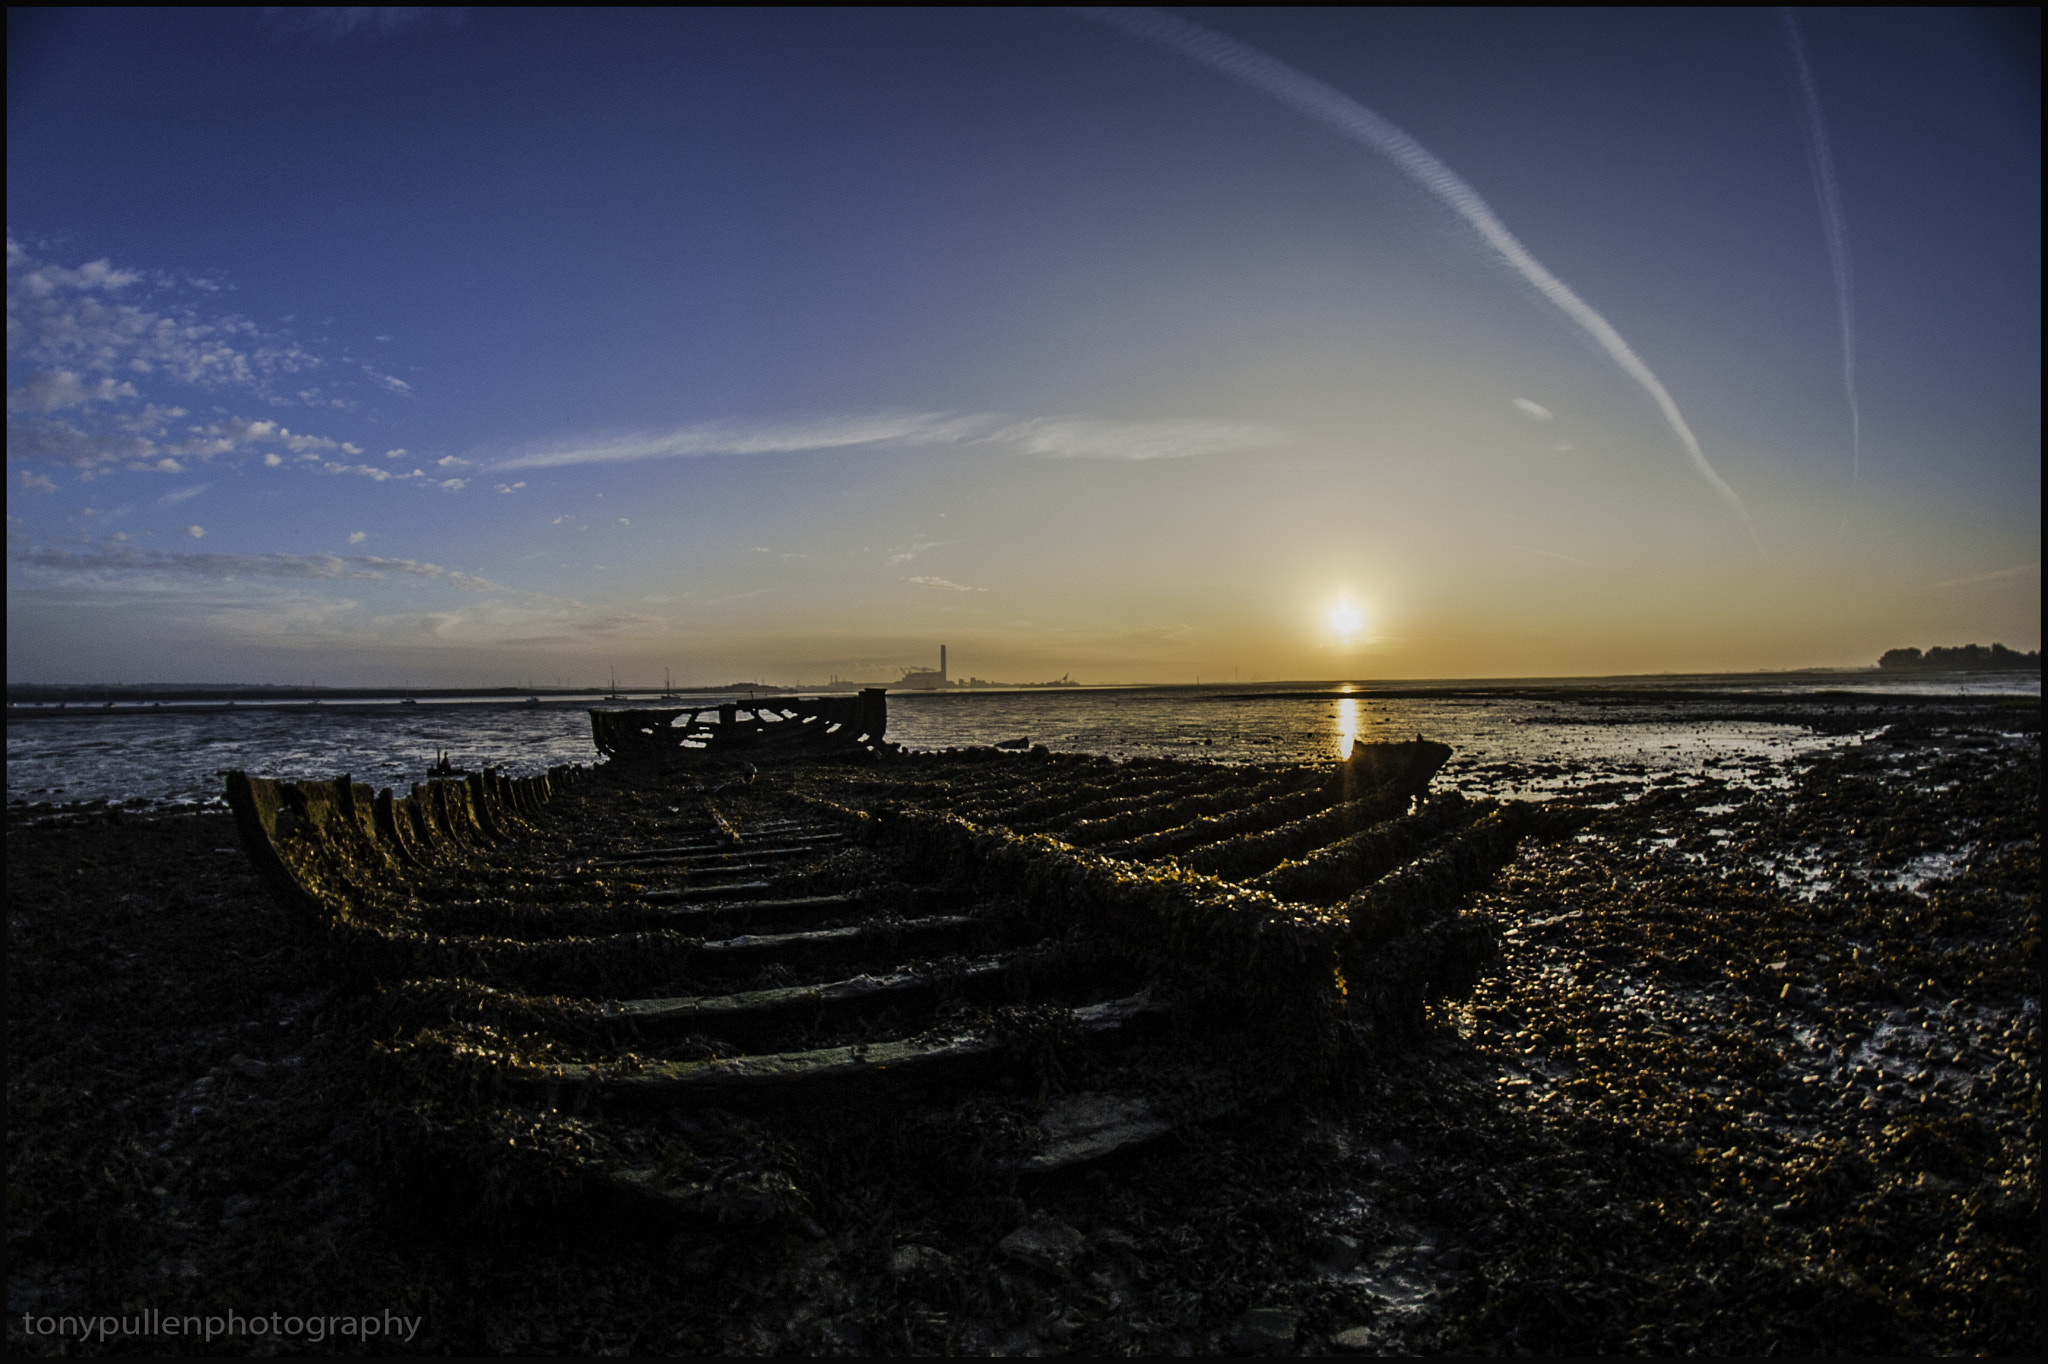 Photograph Medway at dawn  by Tony  Pullen on 500px